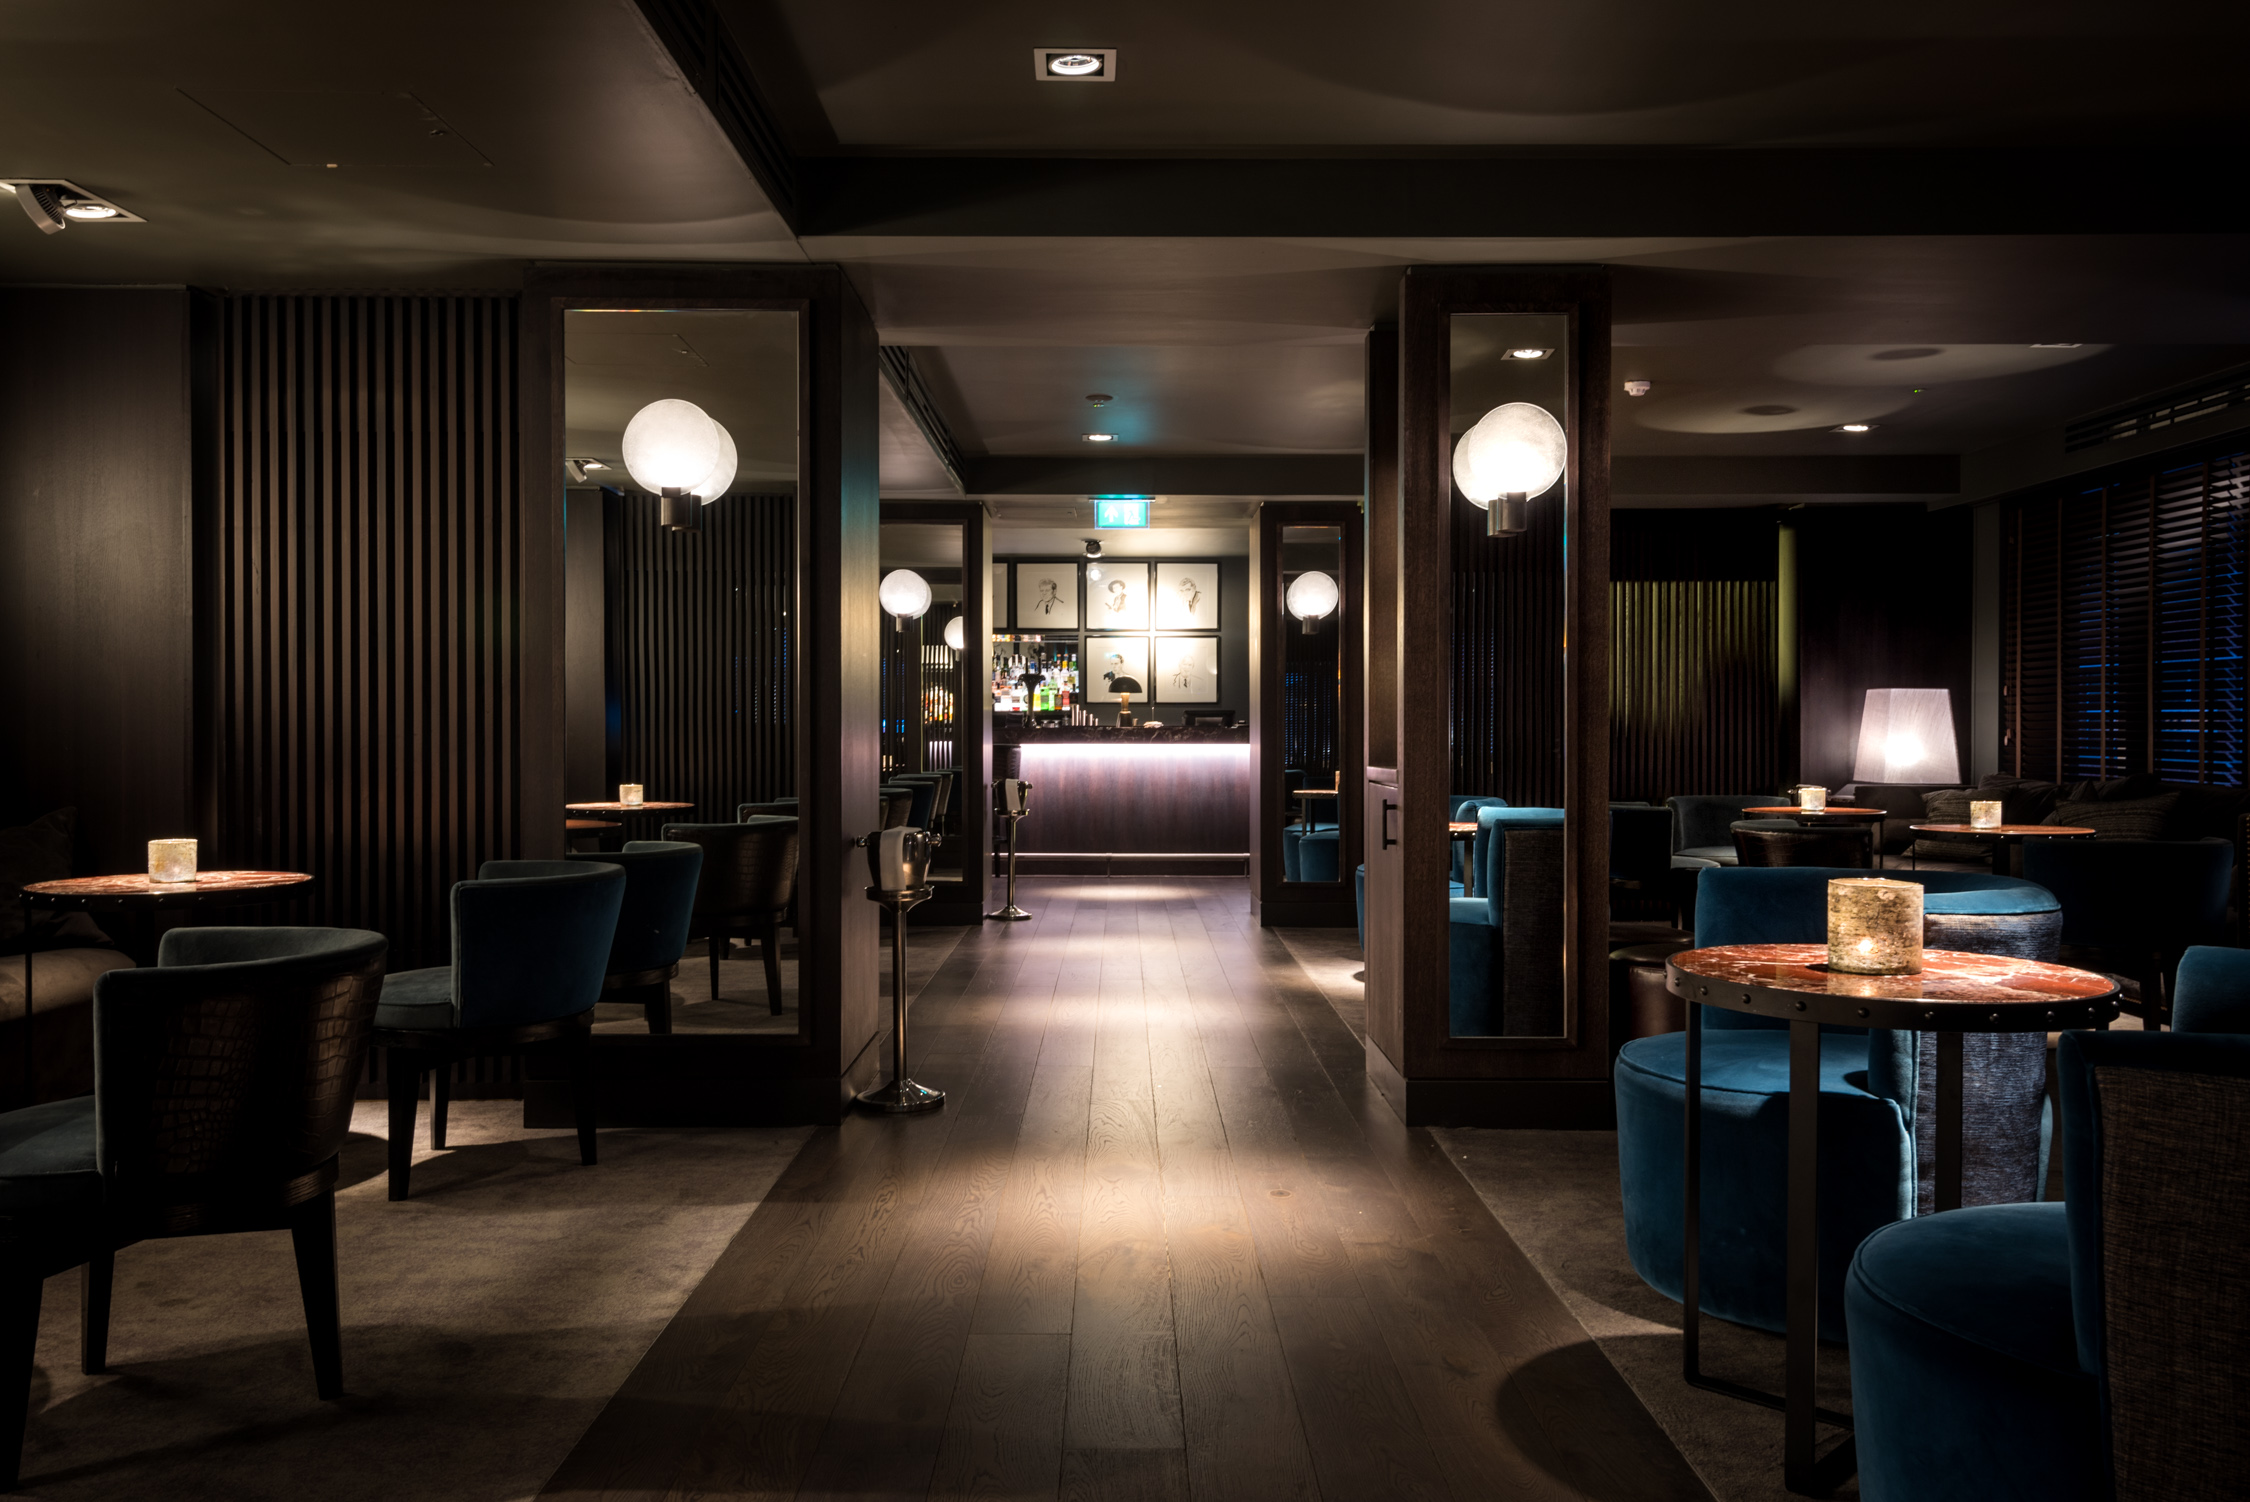 Dakota glasgow a design focused luxury hotel in scotland for Design hotel glasgow